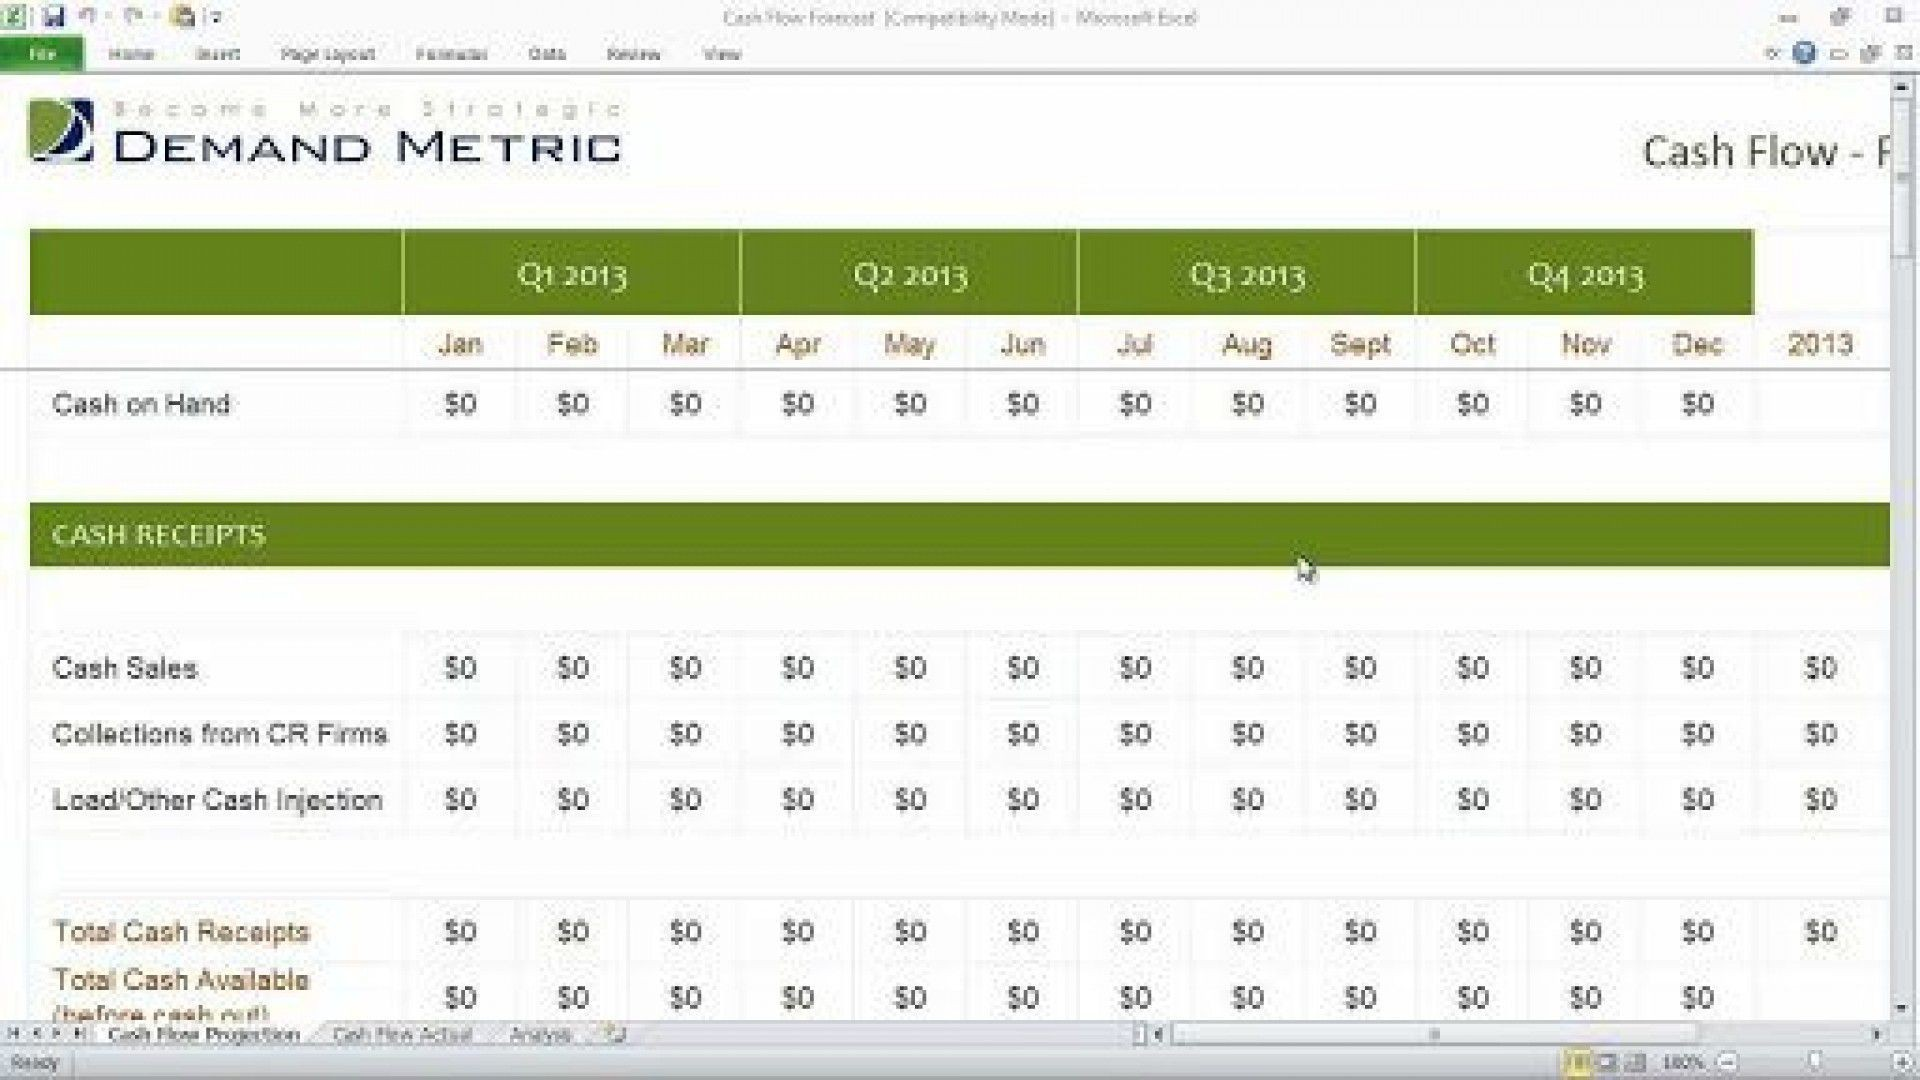 009 Archaicawful Cash Flow Forecast Excel Template Uk Free Example 1920